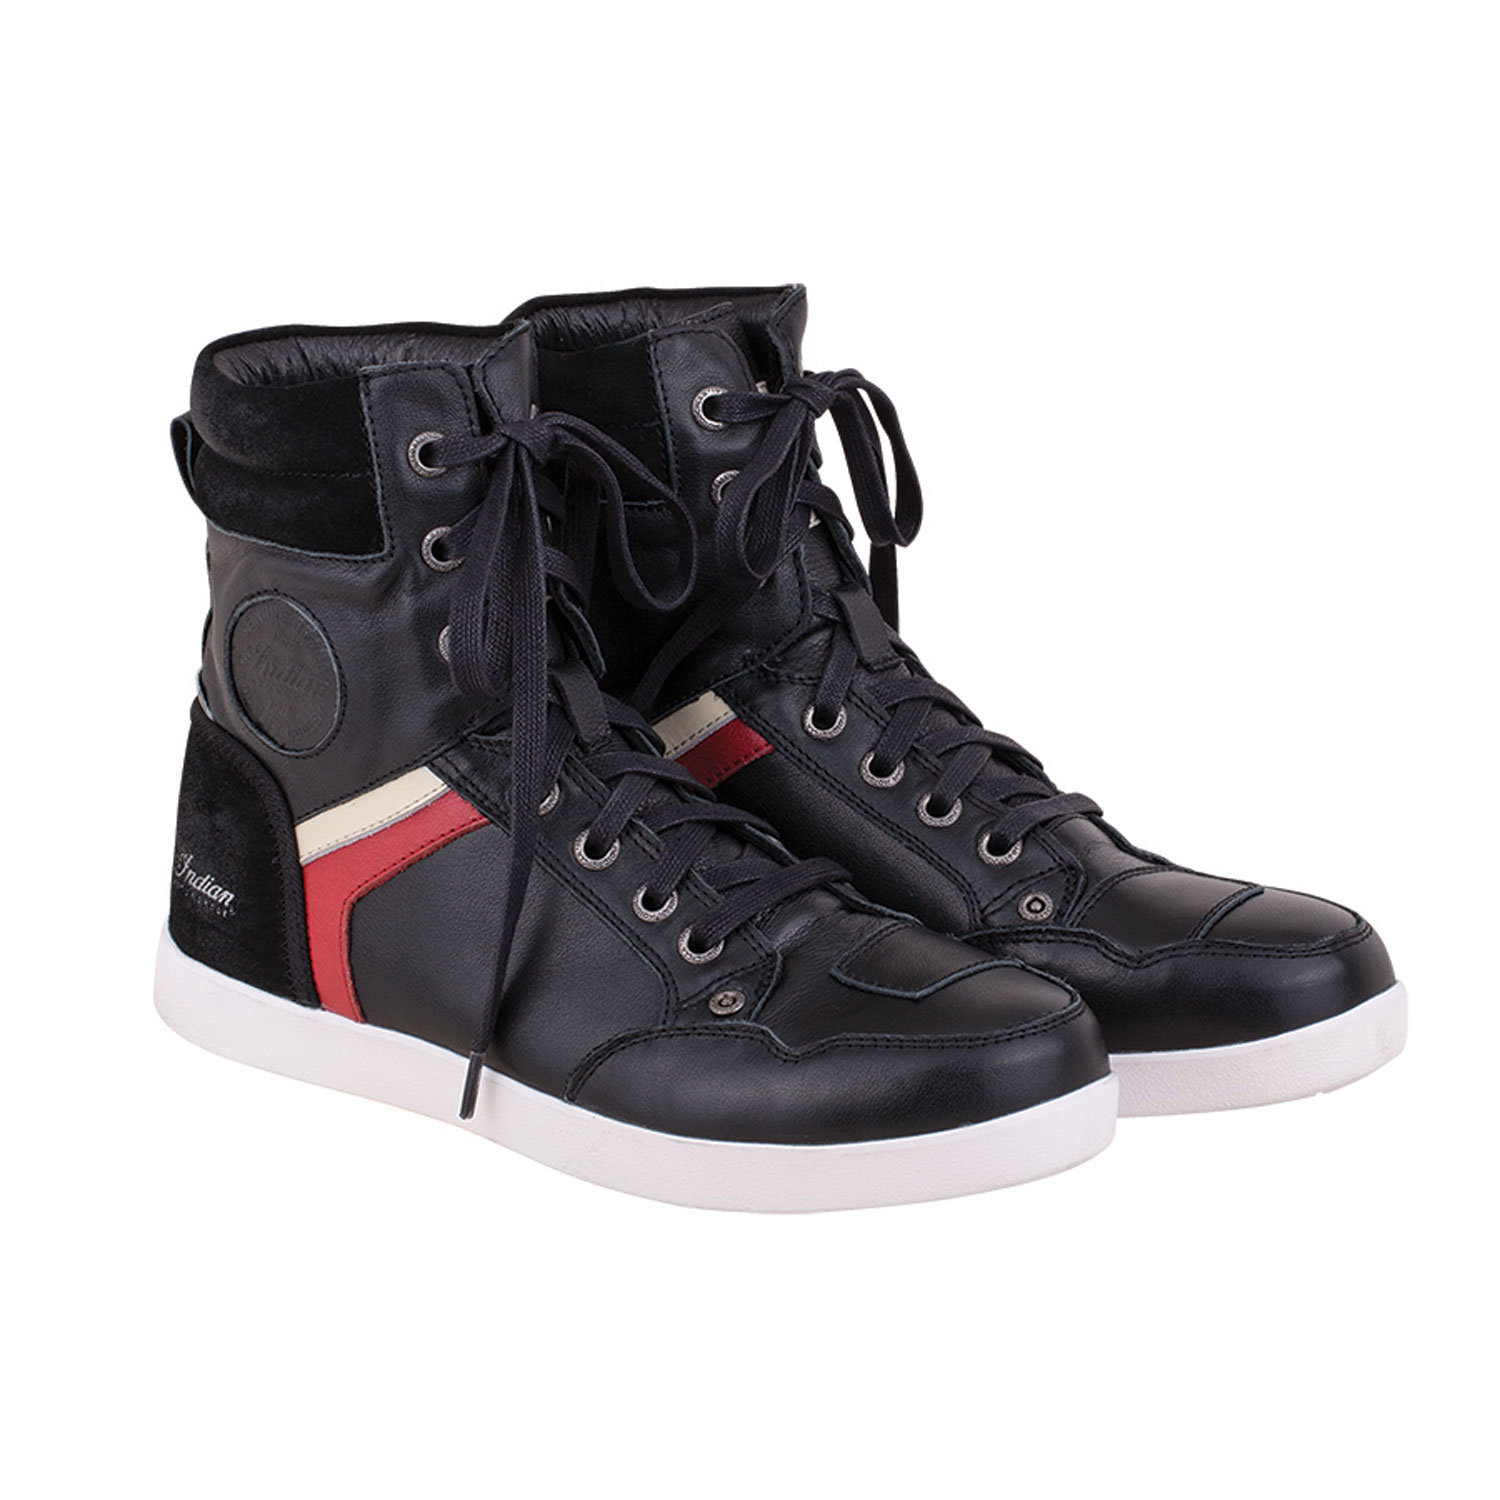 Men's Black Sneaker